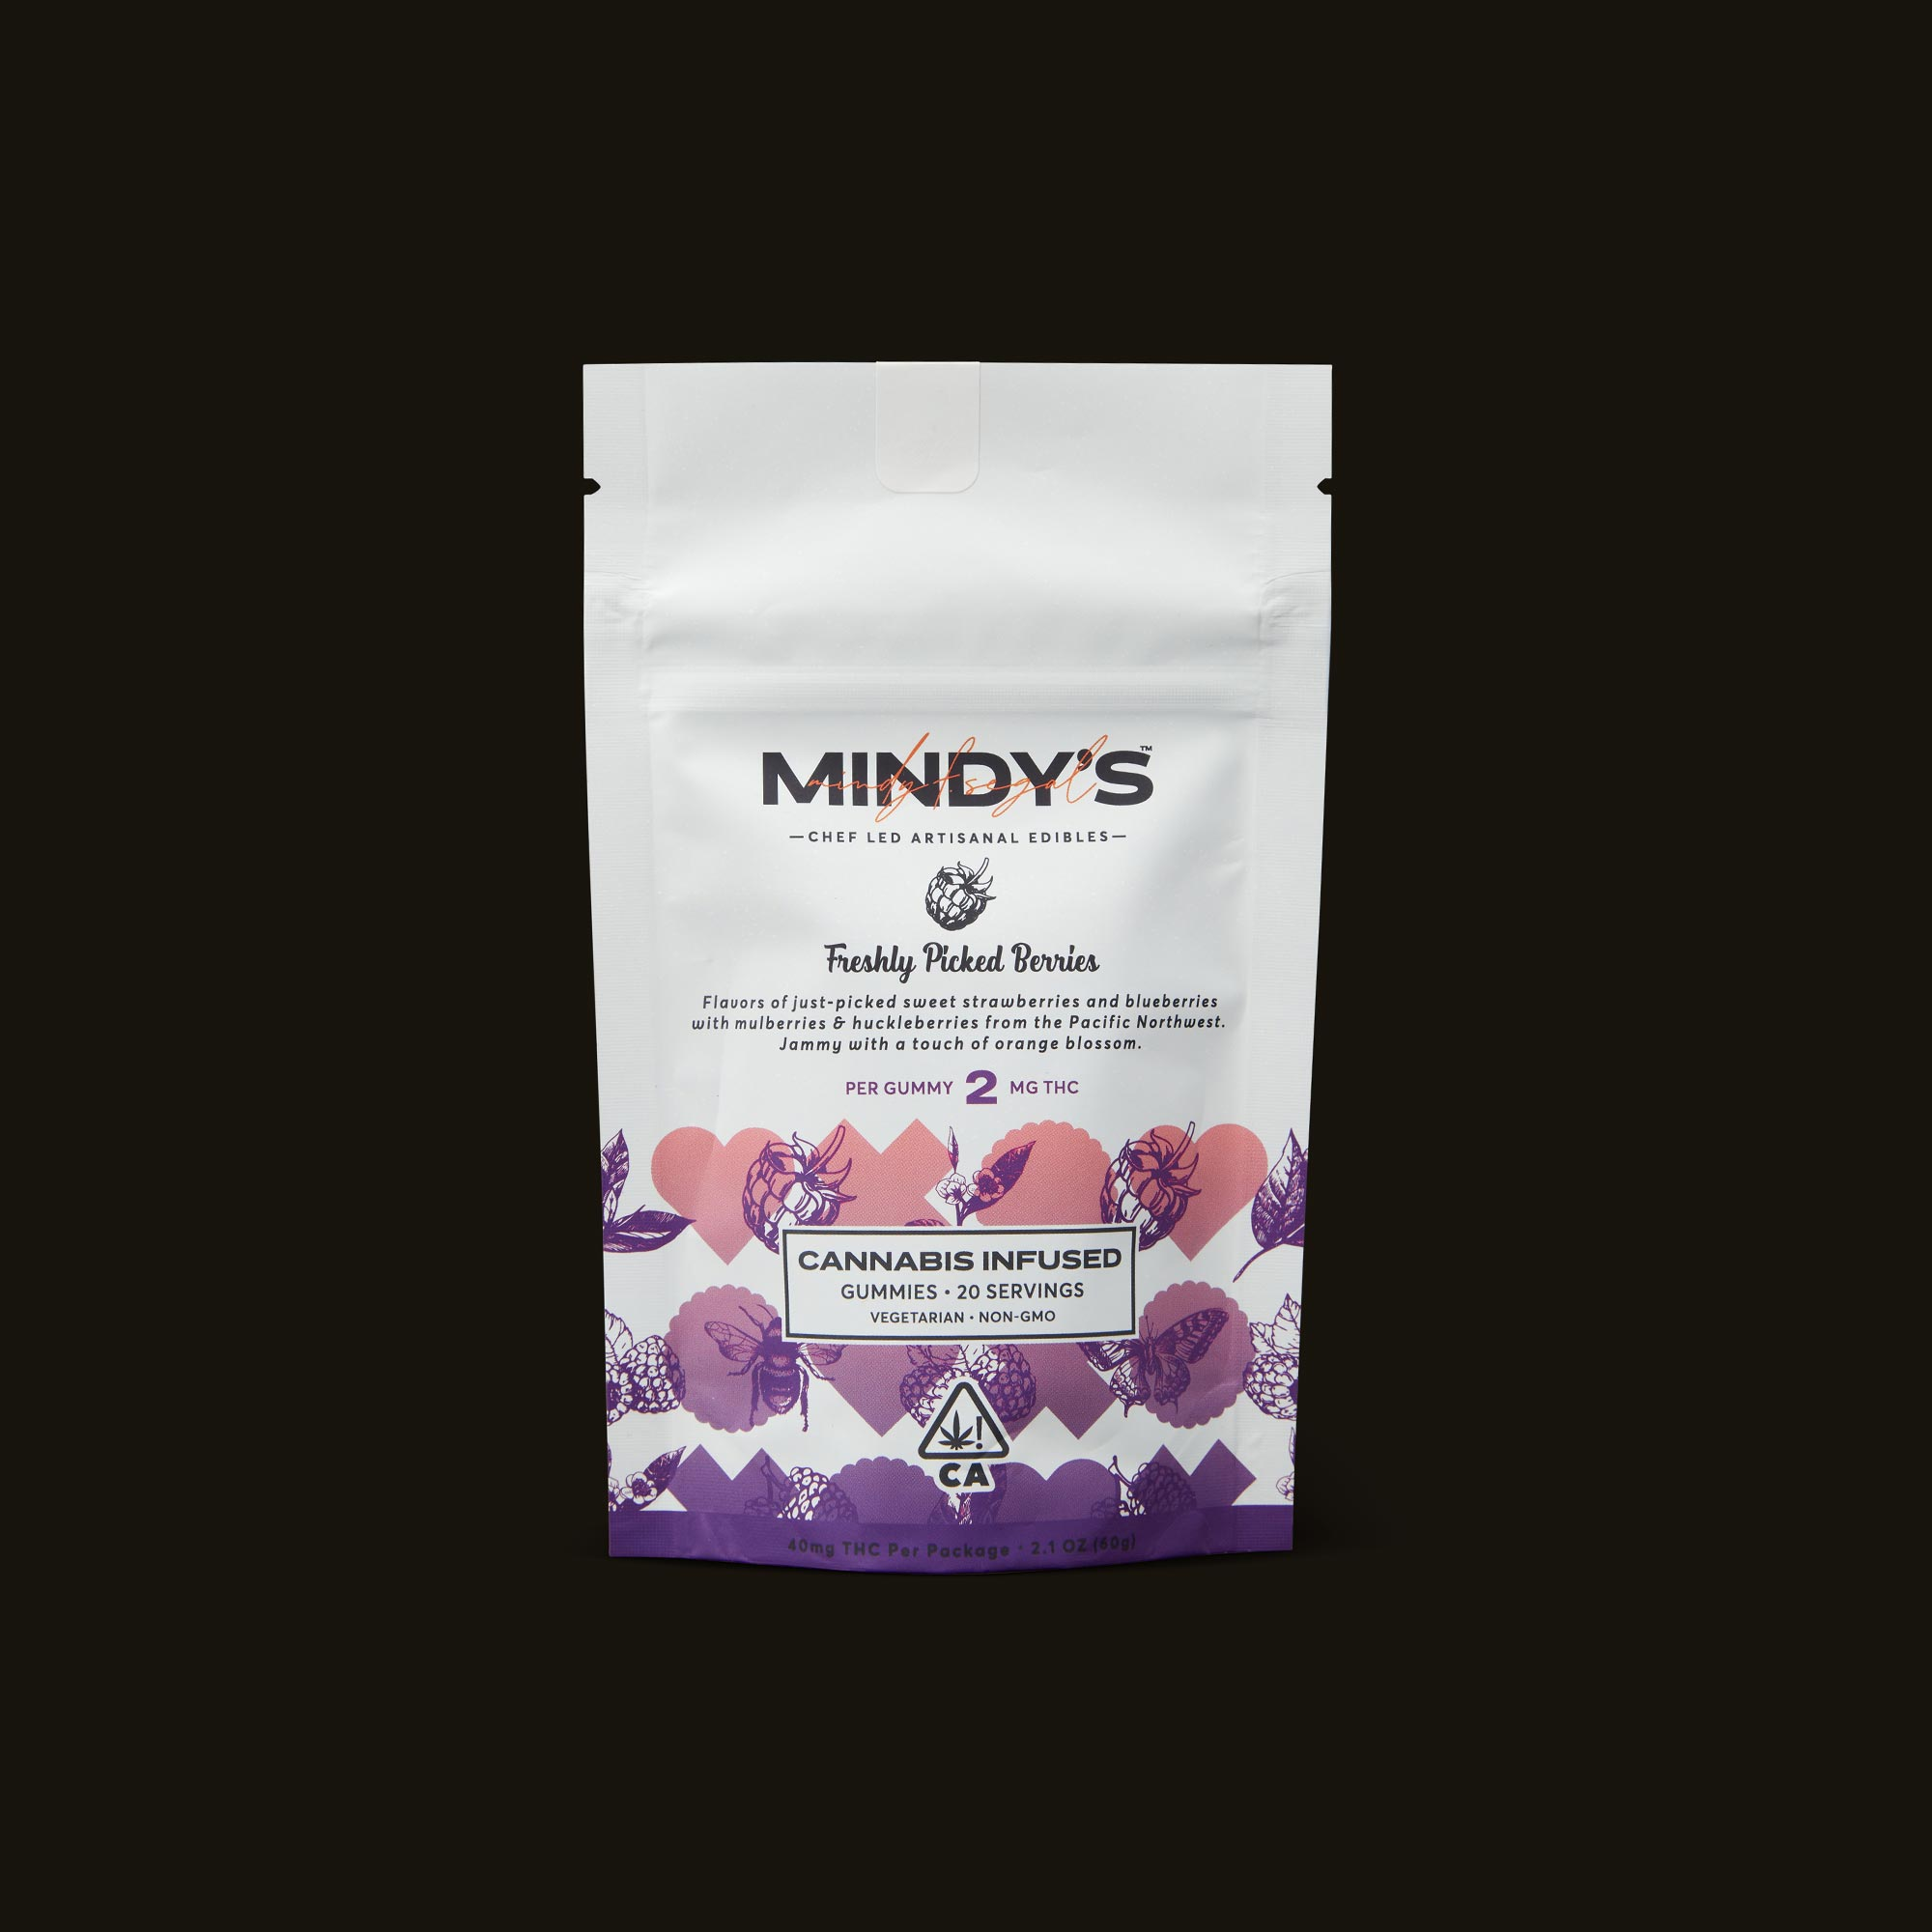 Mindy's Artisanal Edibles Freshly Picked Berries Front Packaging